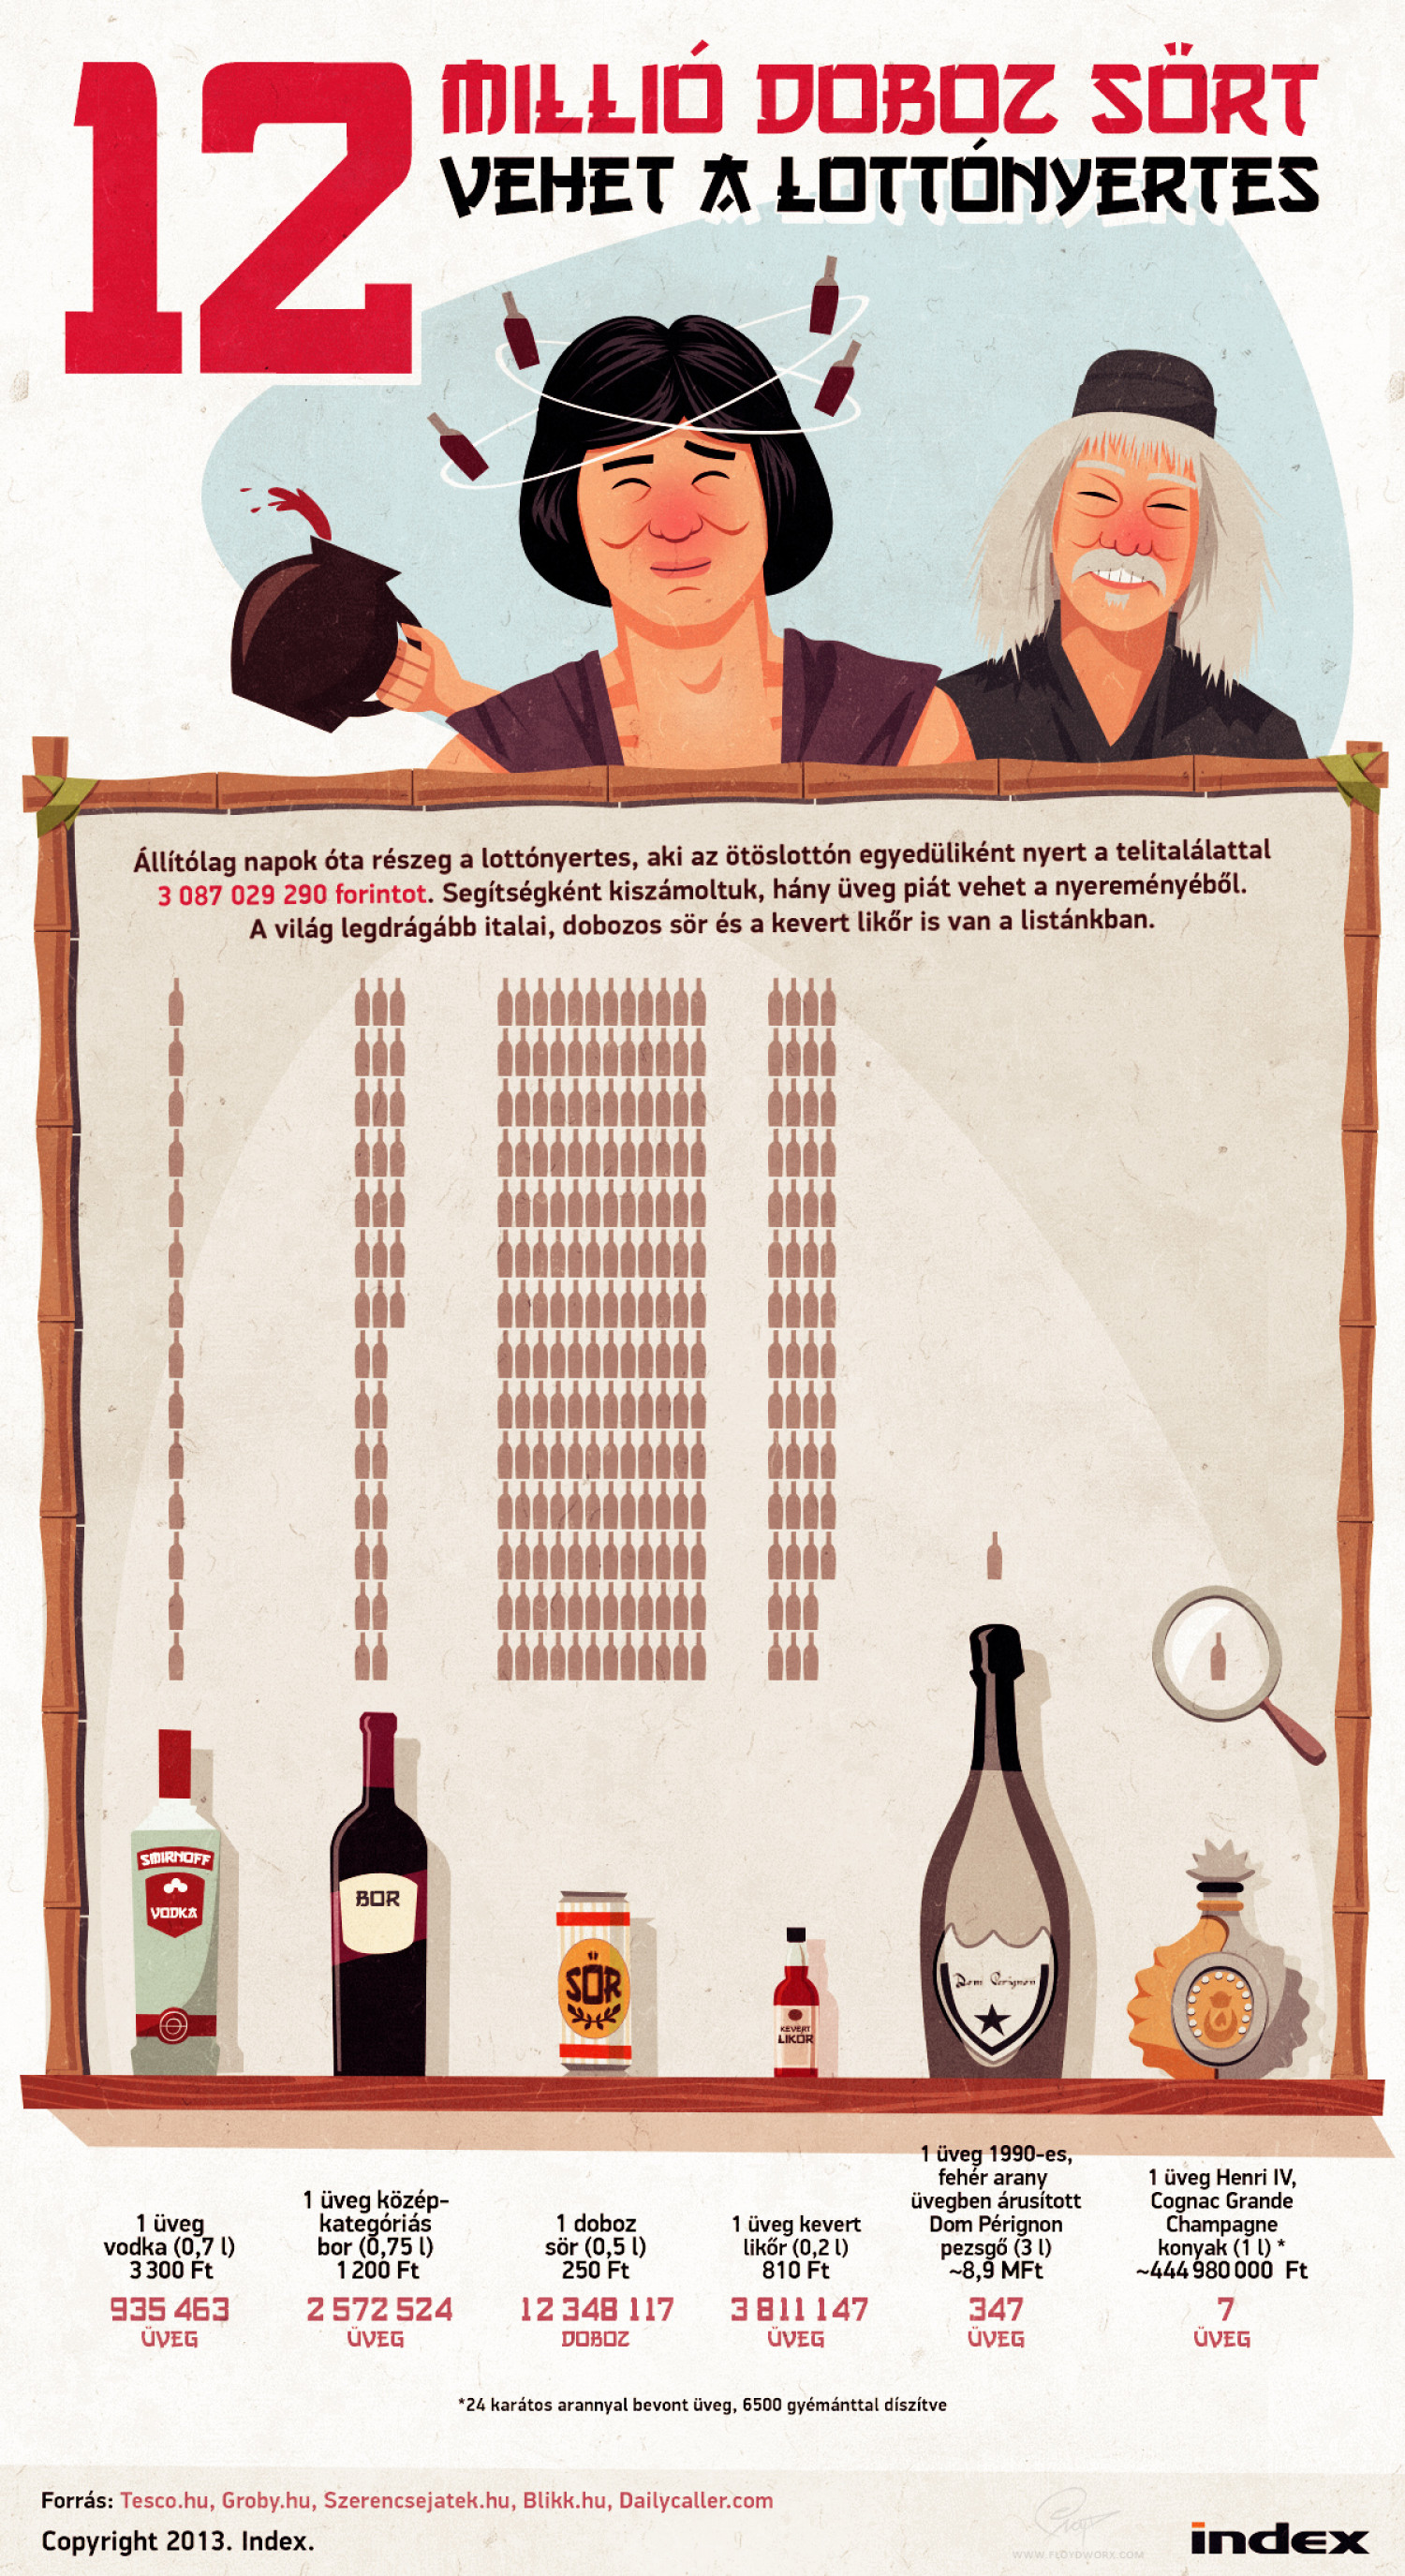 Drunk lottery winner - infographic Infographic